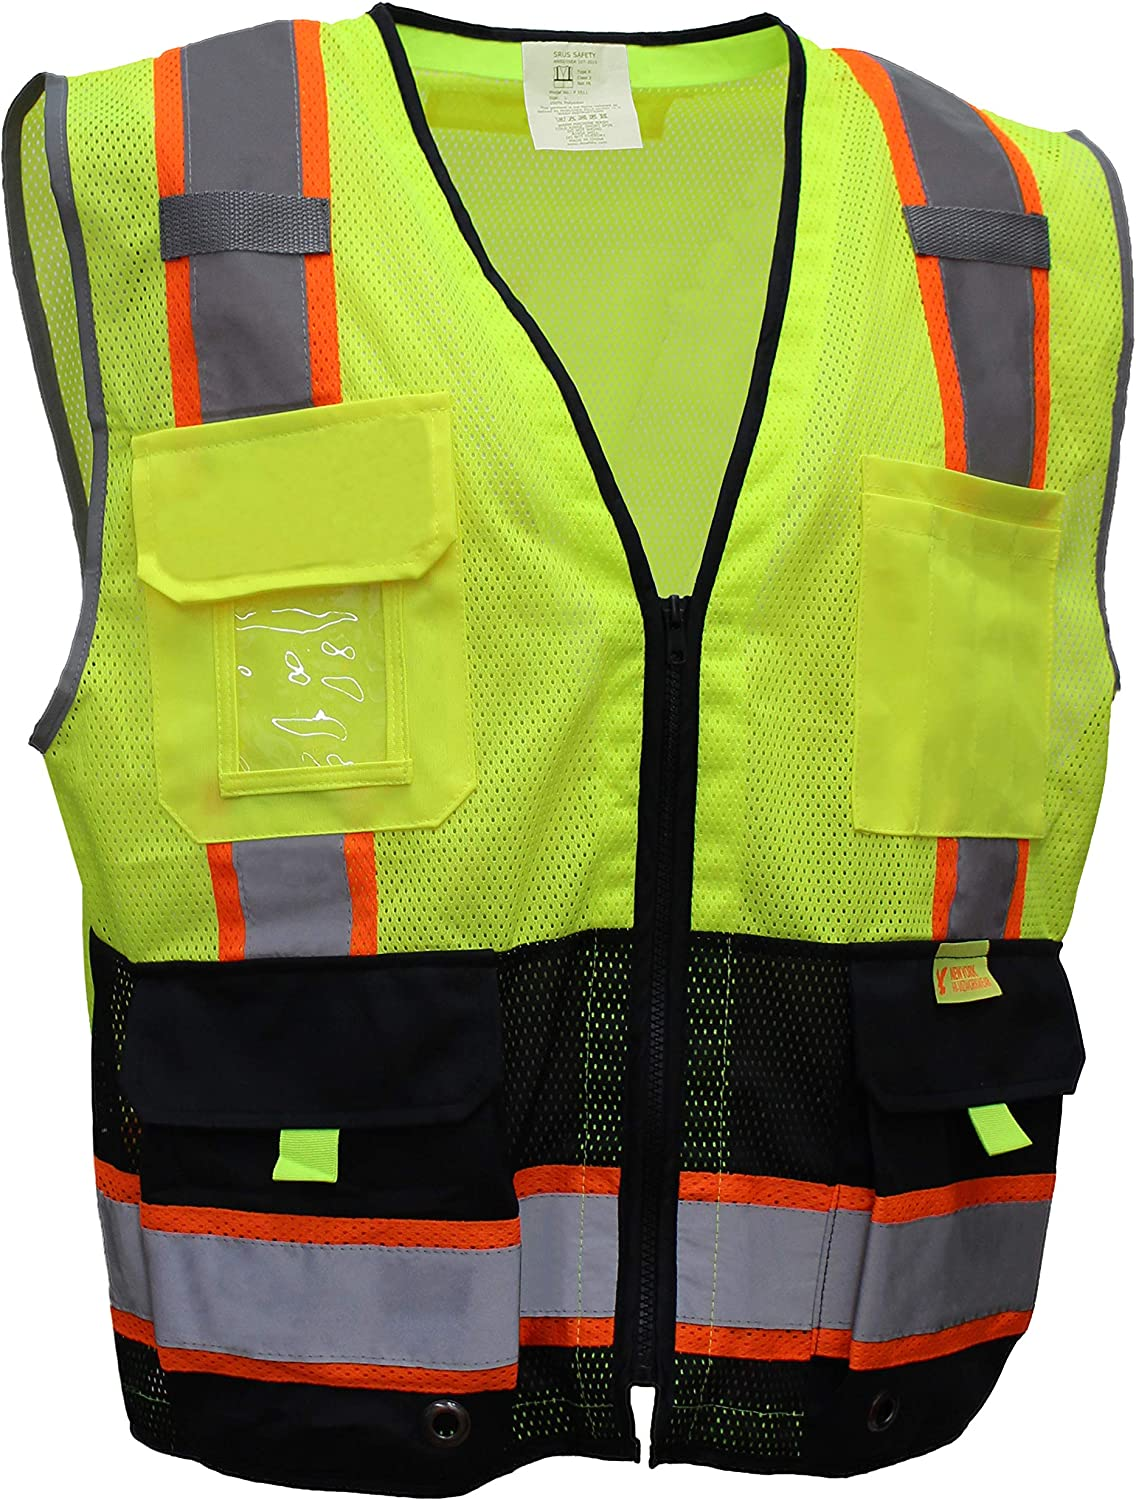 RK Safety P5512 Class 2 High Visible Two Tone Reflective Strips Breathable Mesh Vest, Pockets Harness D-Ring Pass Thru, ANSI/ISEA, Construction Motorcycle Traffic Emergency (Neon Lime)